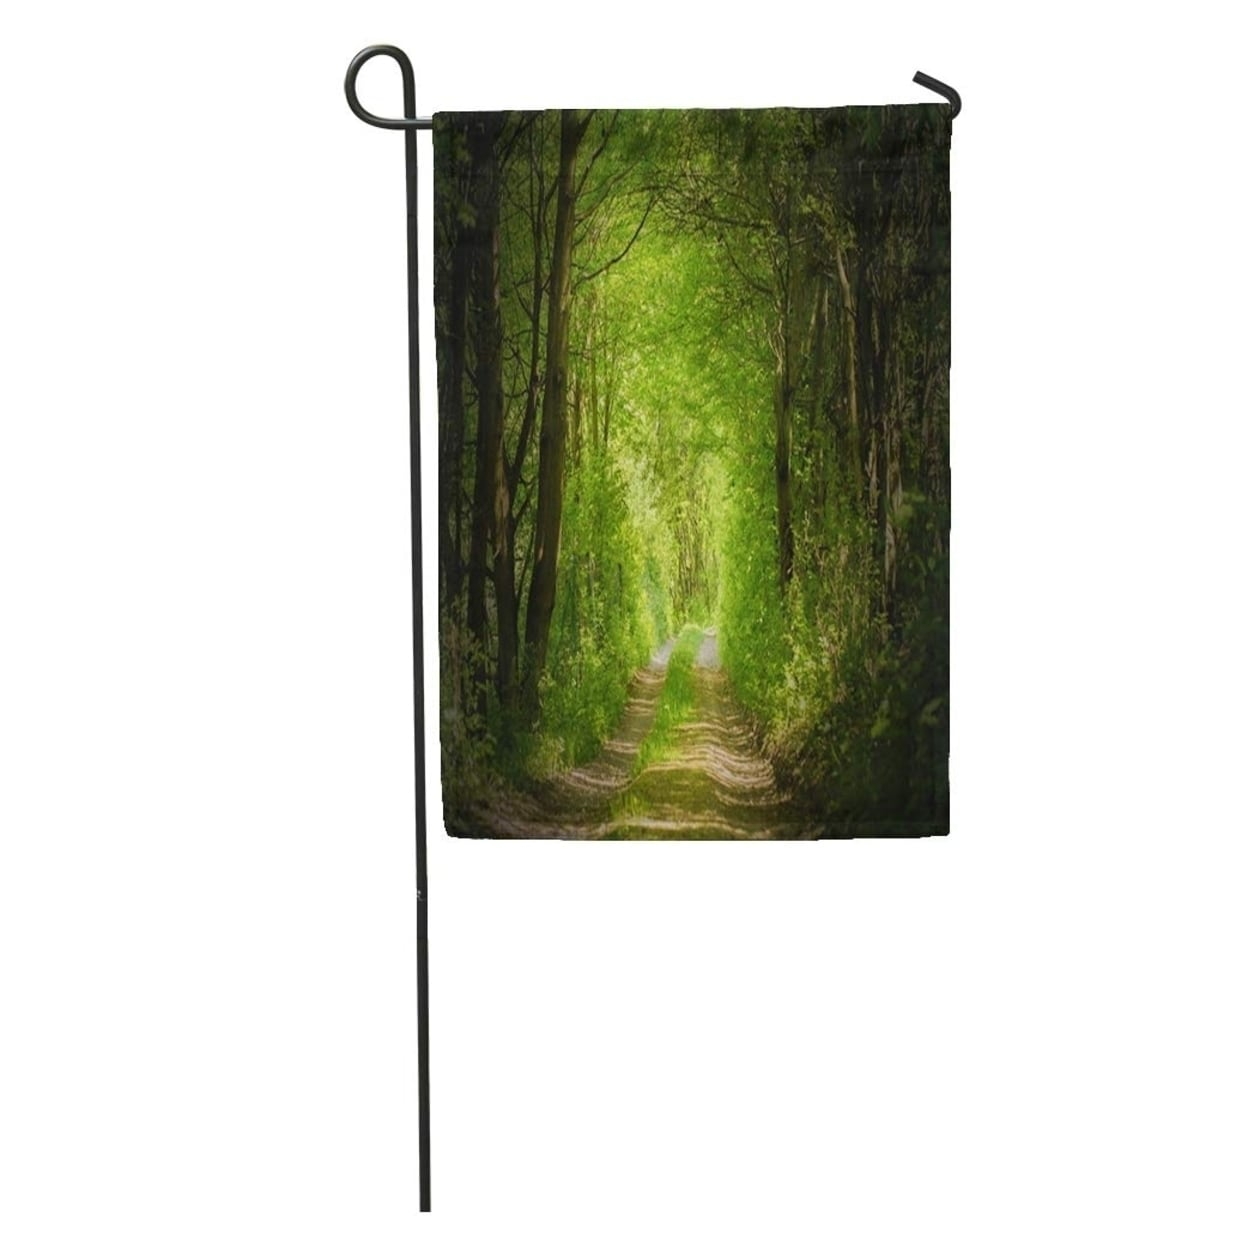 Green Pathway Magic Forest Path Walk Enchanted Wonderland Mystery Jungle Garden Flag Decorative Flag House Banner 12x18 N A On Sale Overstock 31400859